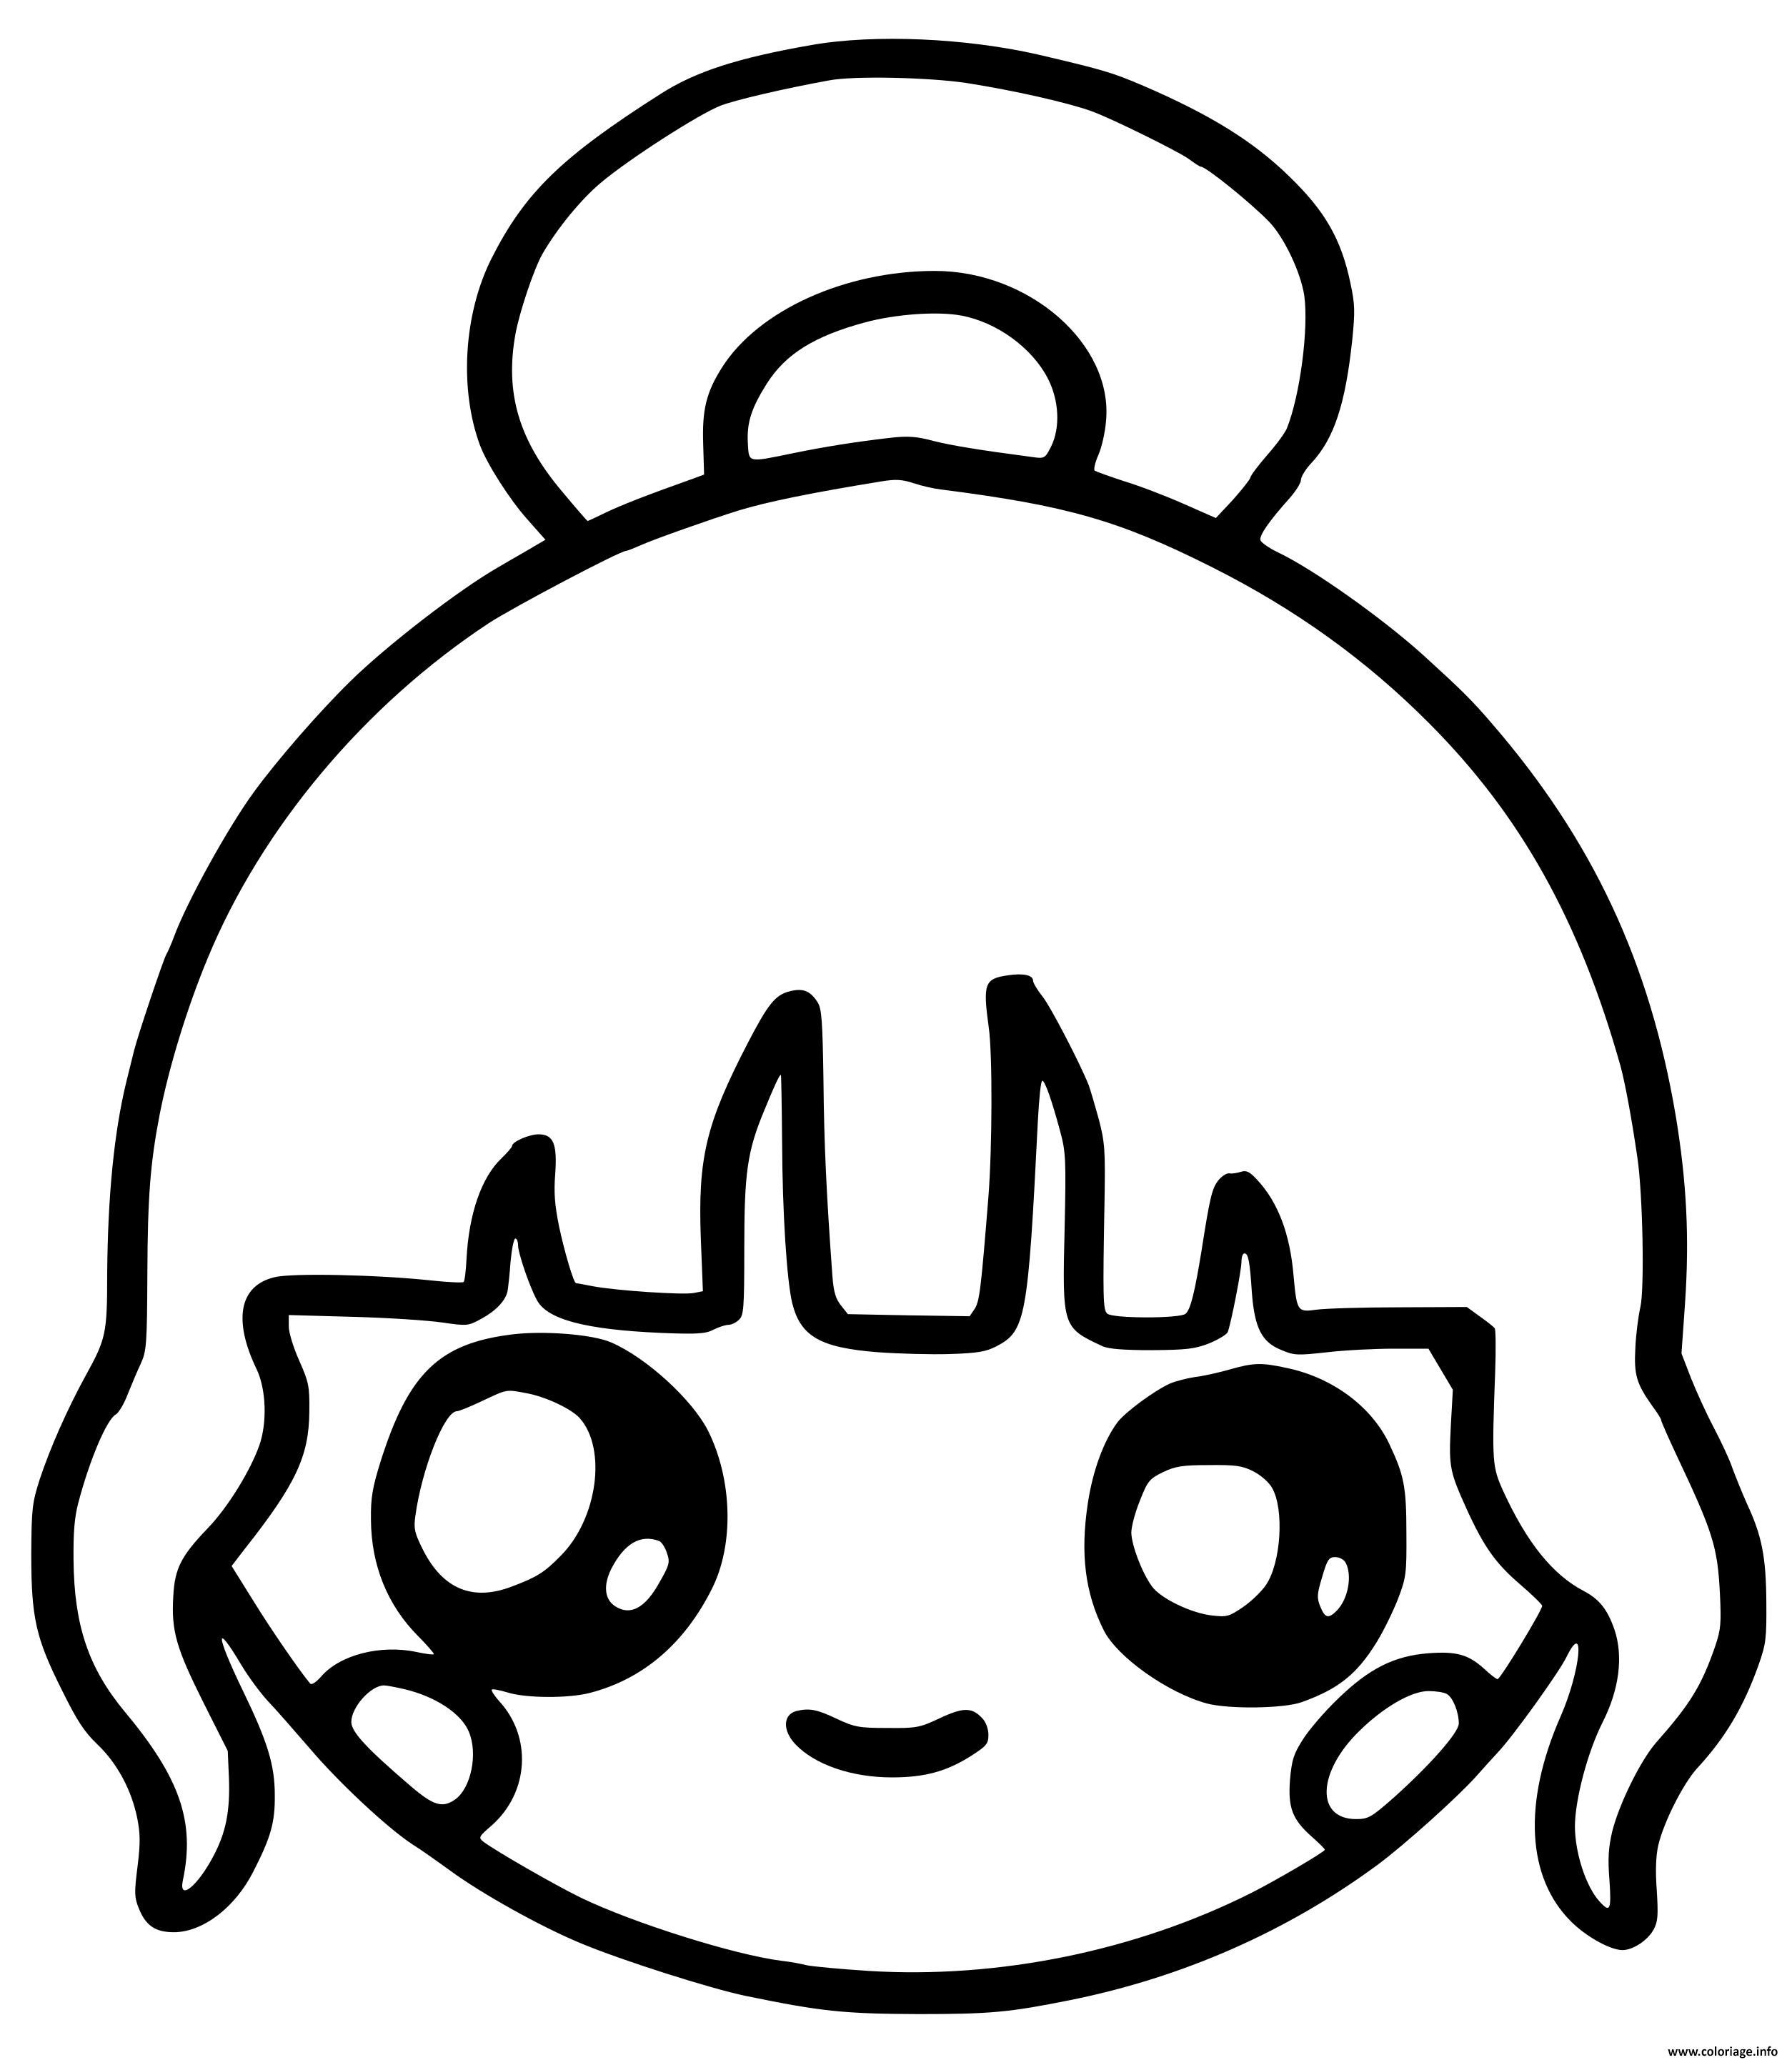 Coloriage fille kawaii  Coloring pictures, Coloring pages, Kawaii